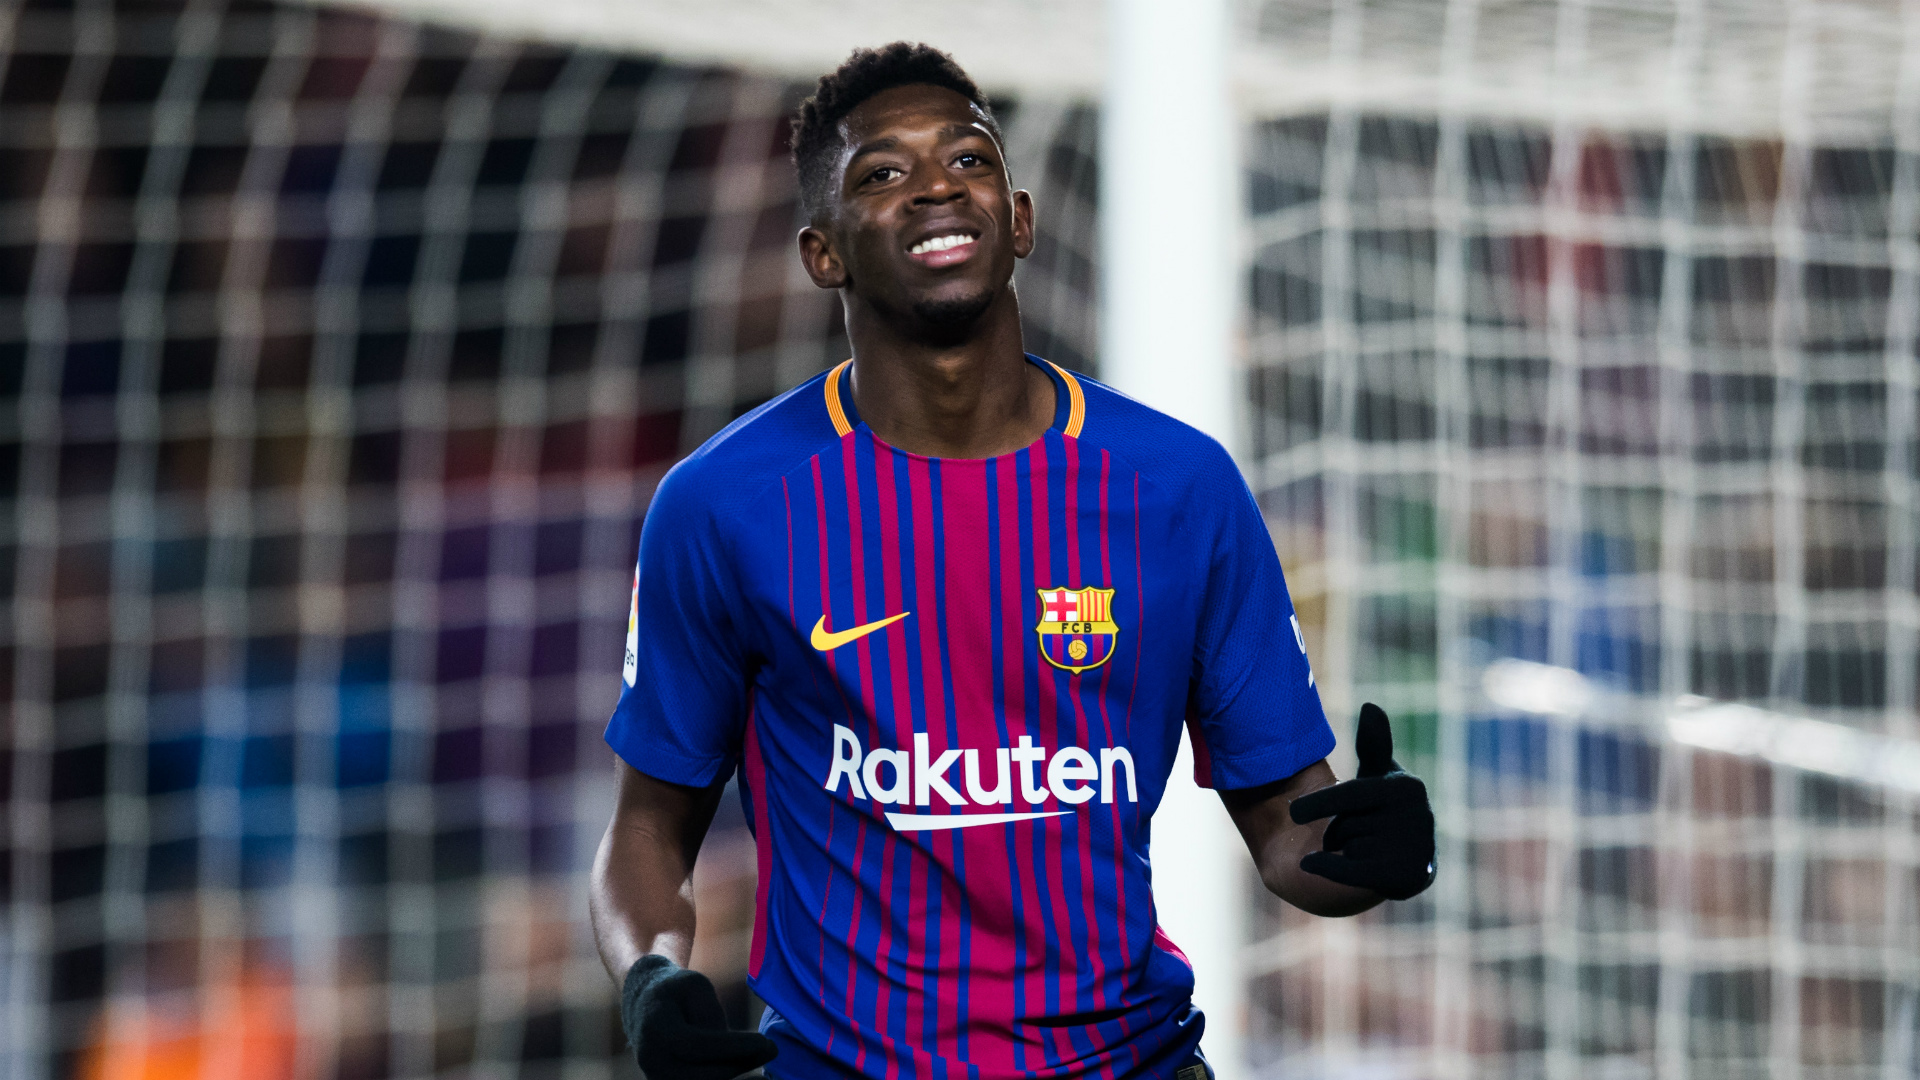 Ousmane Dembele has been linked with Manchester United